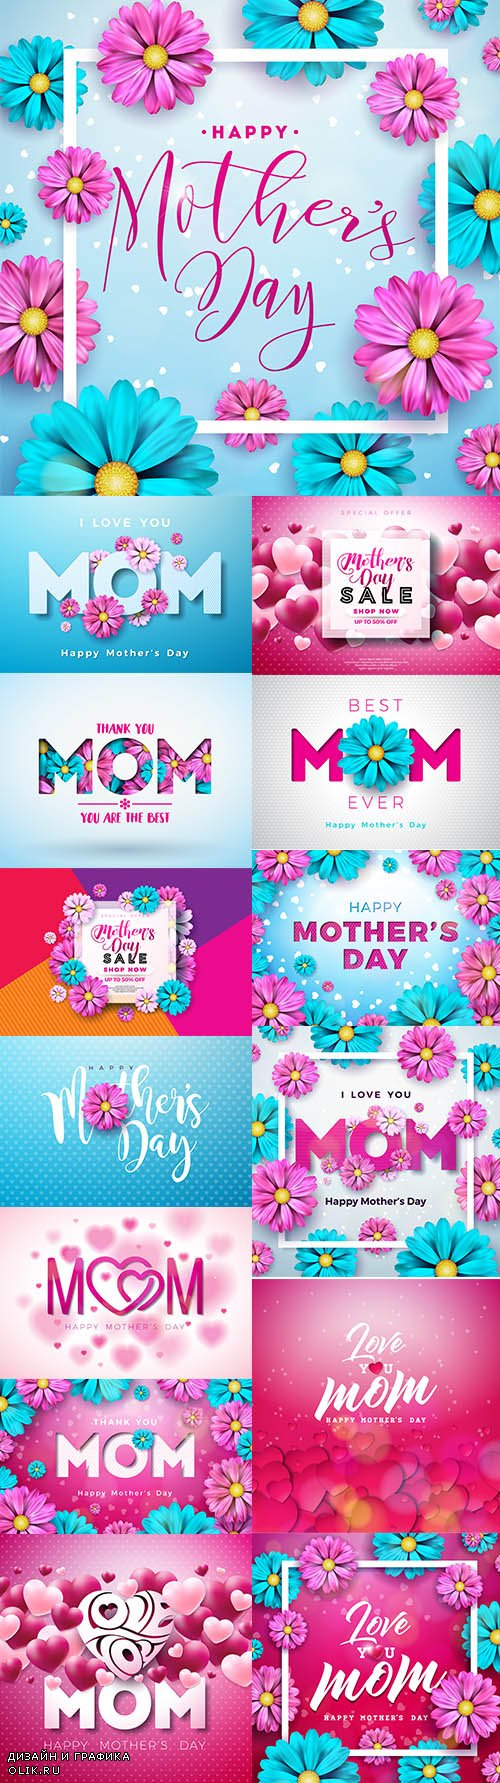 Happy Mothers Day Greeting Card Premium Illustrations Set